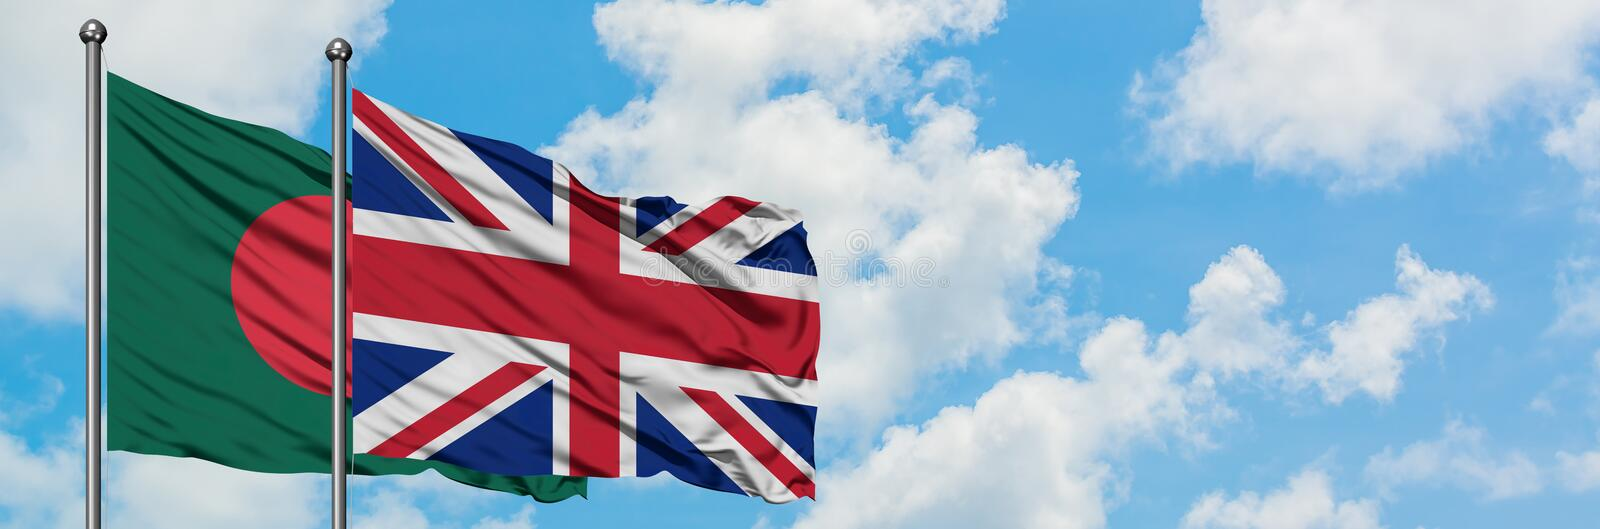 Bangladesh and United Kingdom flag waving in the wind against white cloudy blue sky together. Diplomacy concept, international. Relations, consul, diplomat royalty free stock image